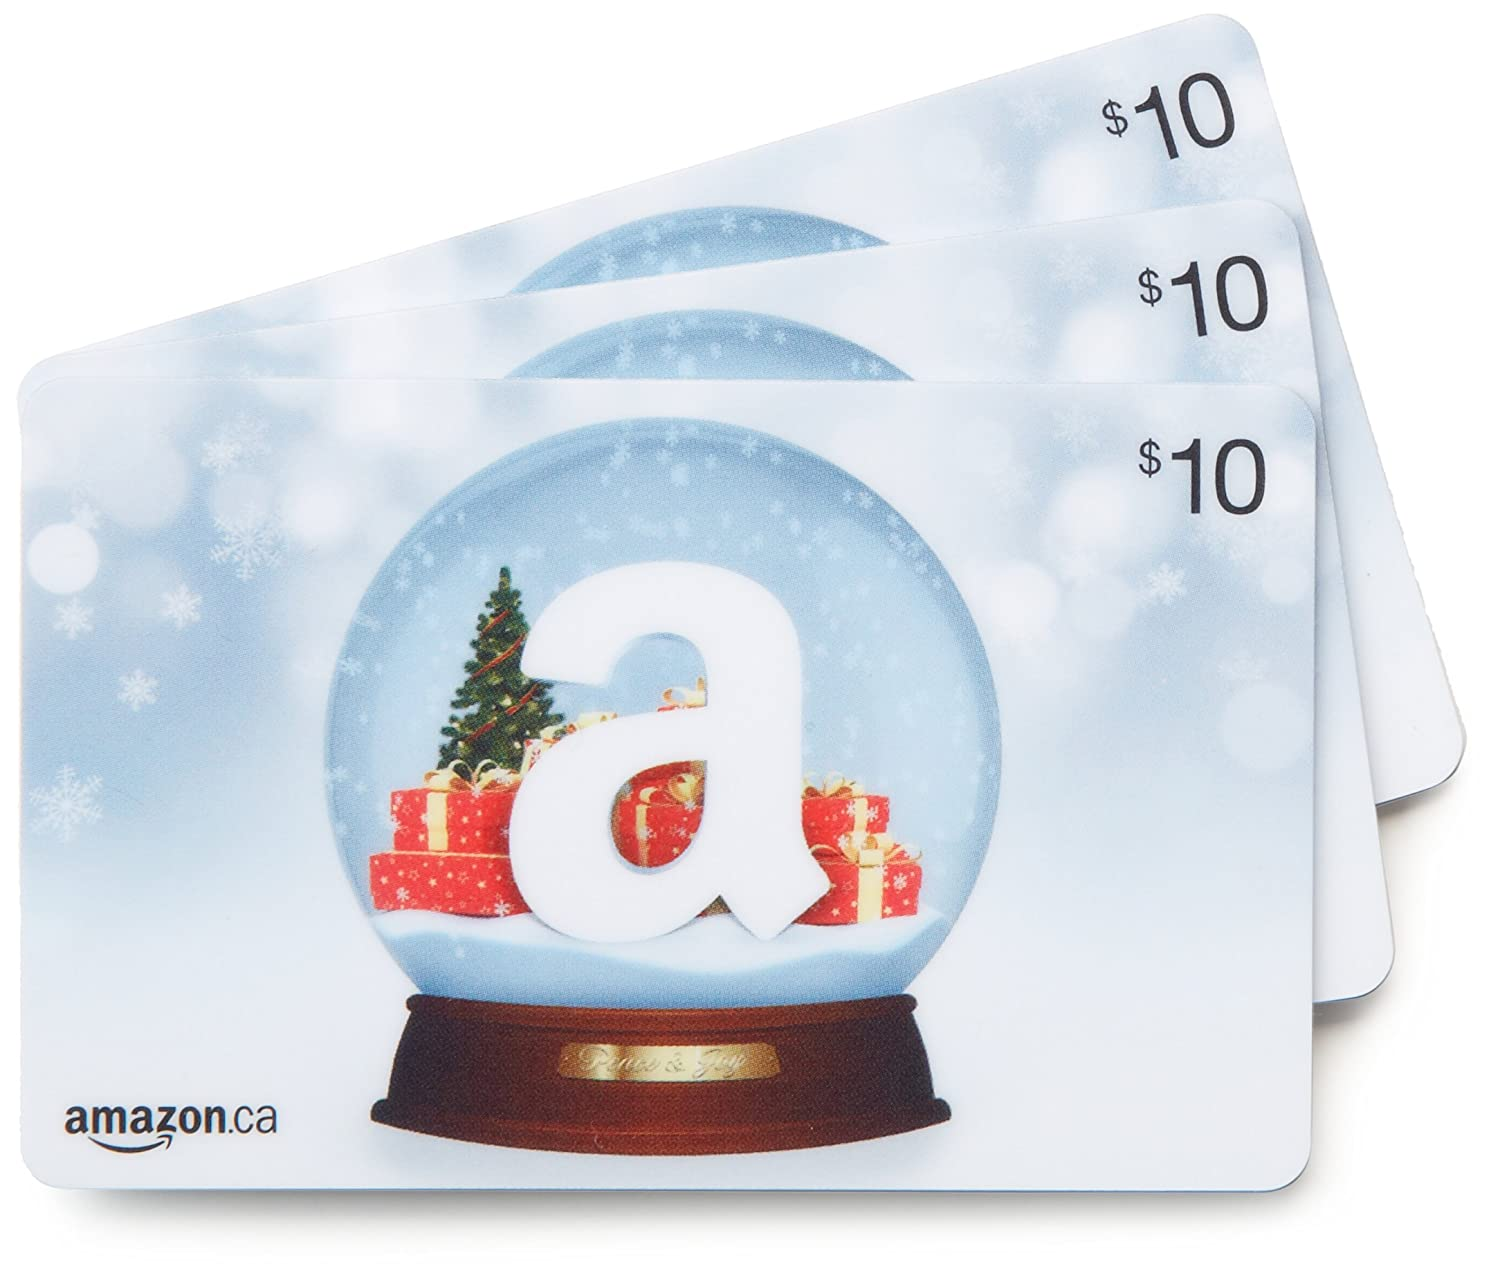 Amazon.ca Gift Cards, Pack of 3 (Various Card Designs) Amazon.ca $40 Gift Cards Amazon.com.ca Inc.